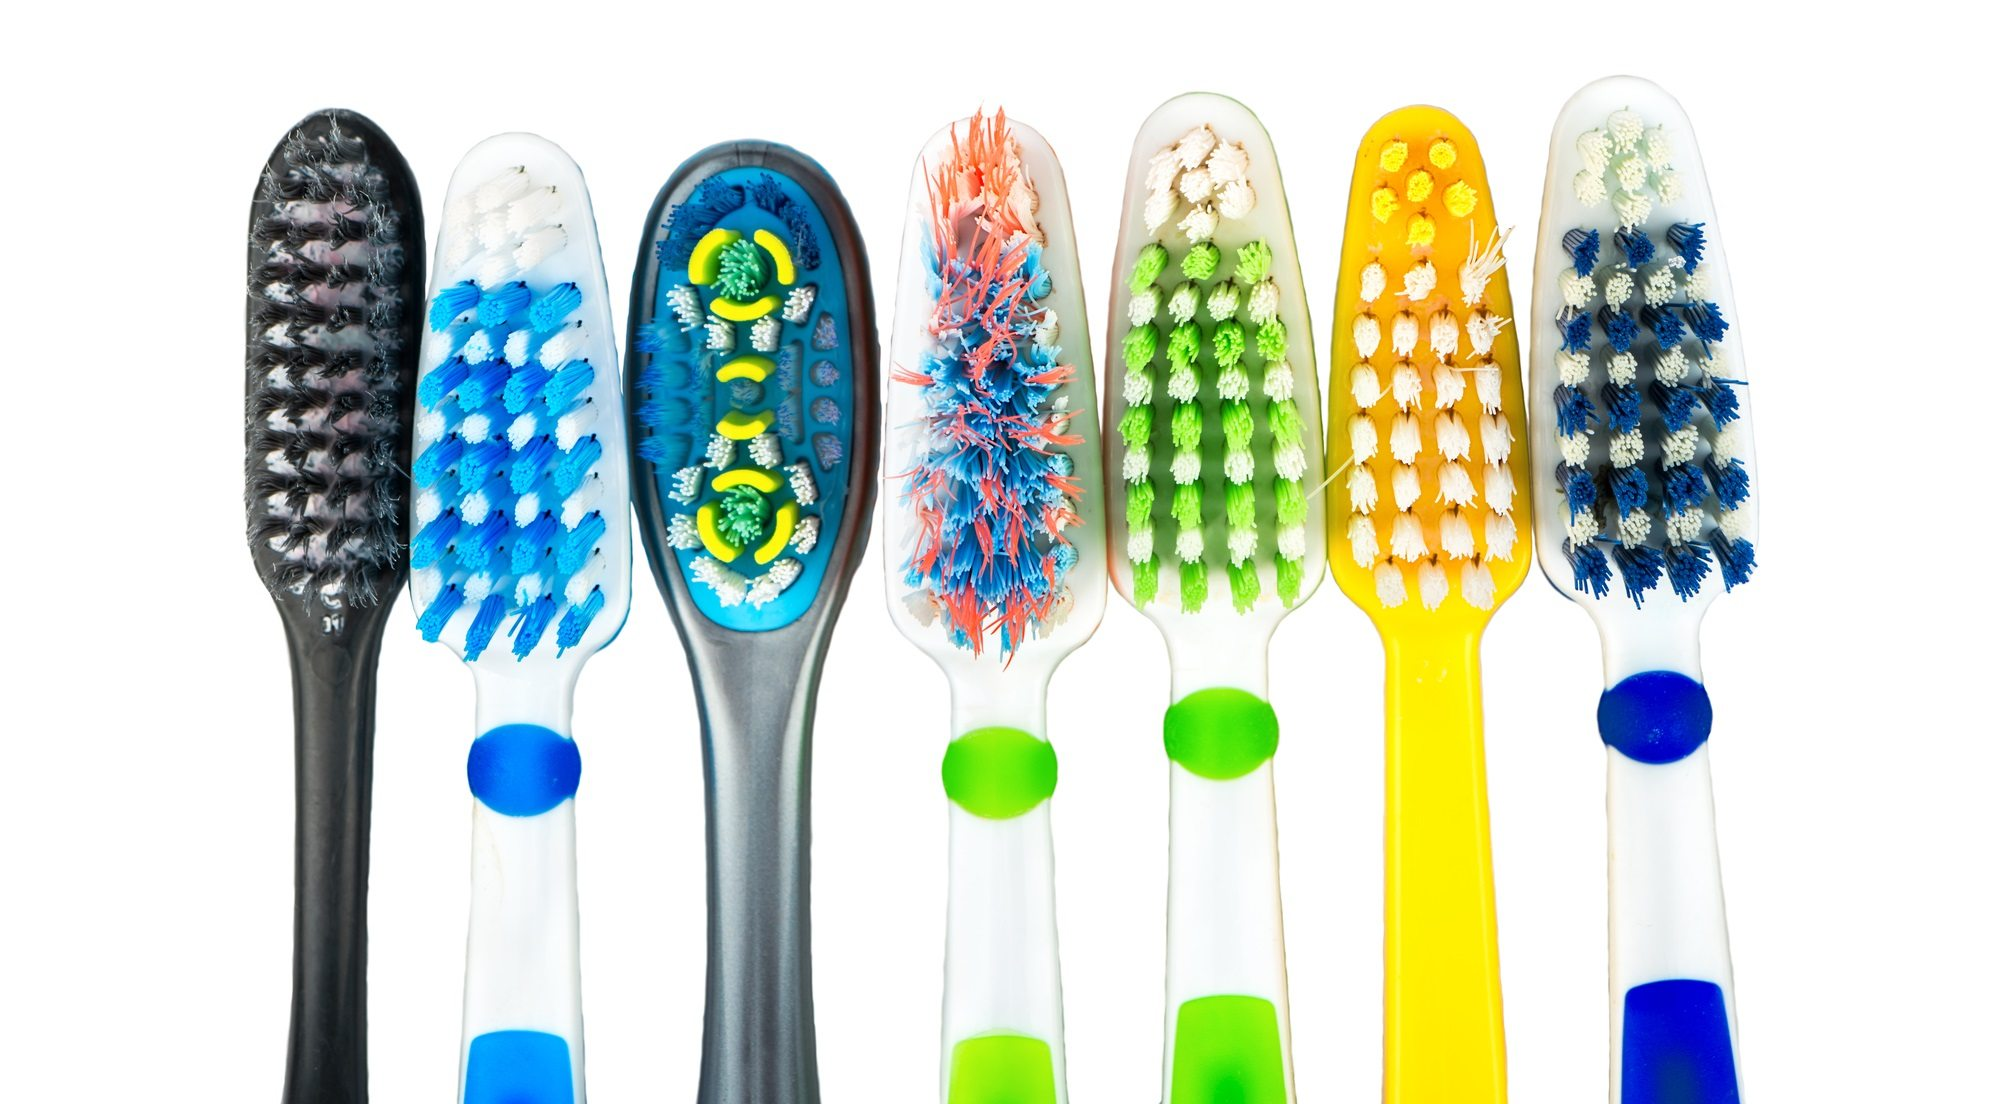 What Are The Best Electric Toothbrushes For Sensitive Teeth